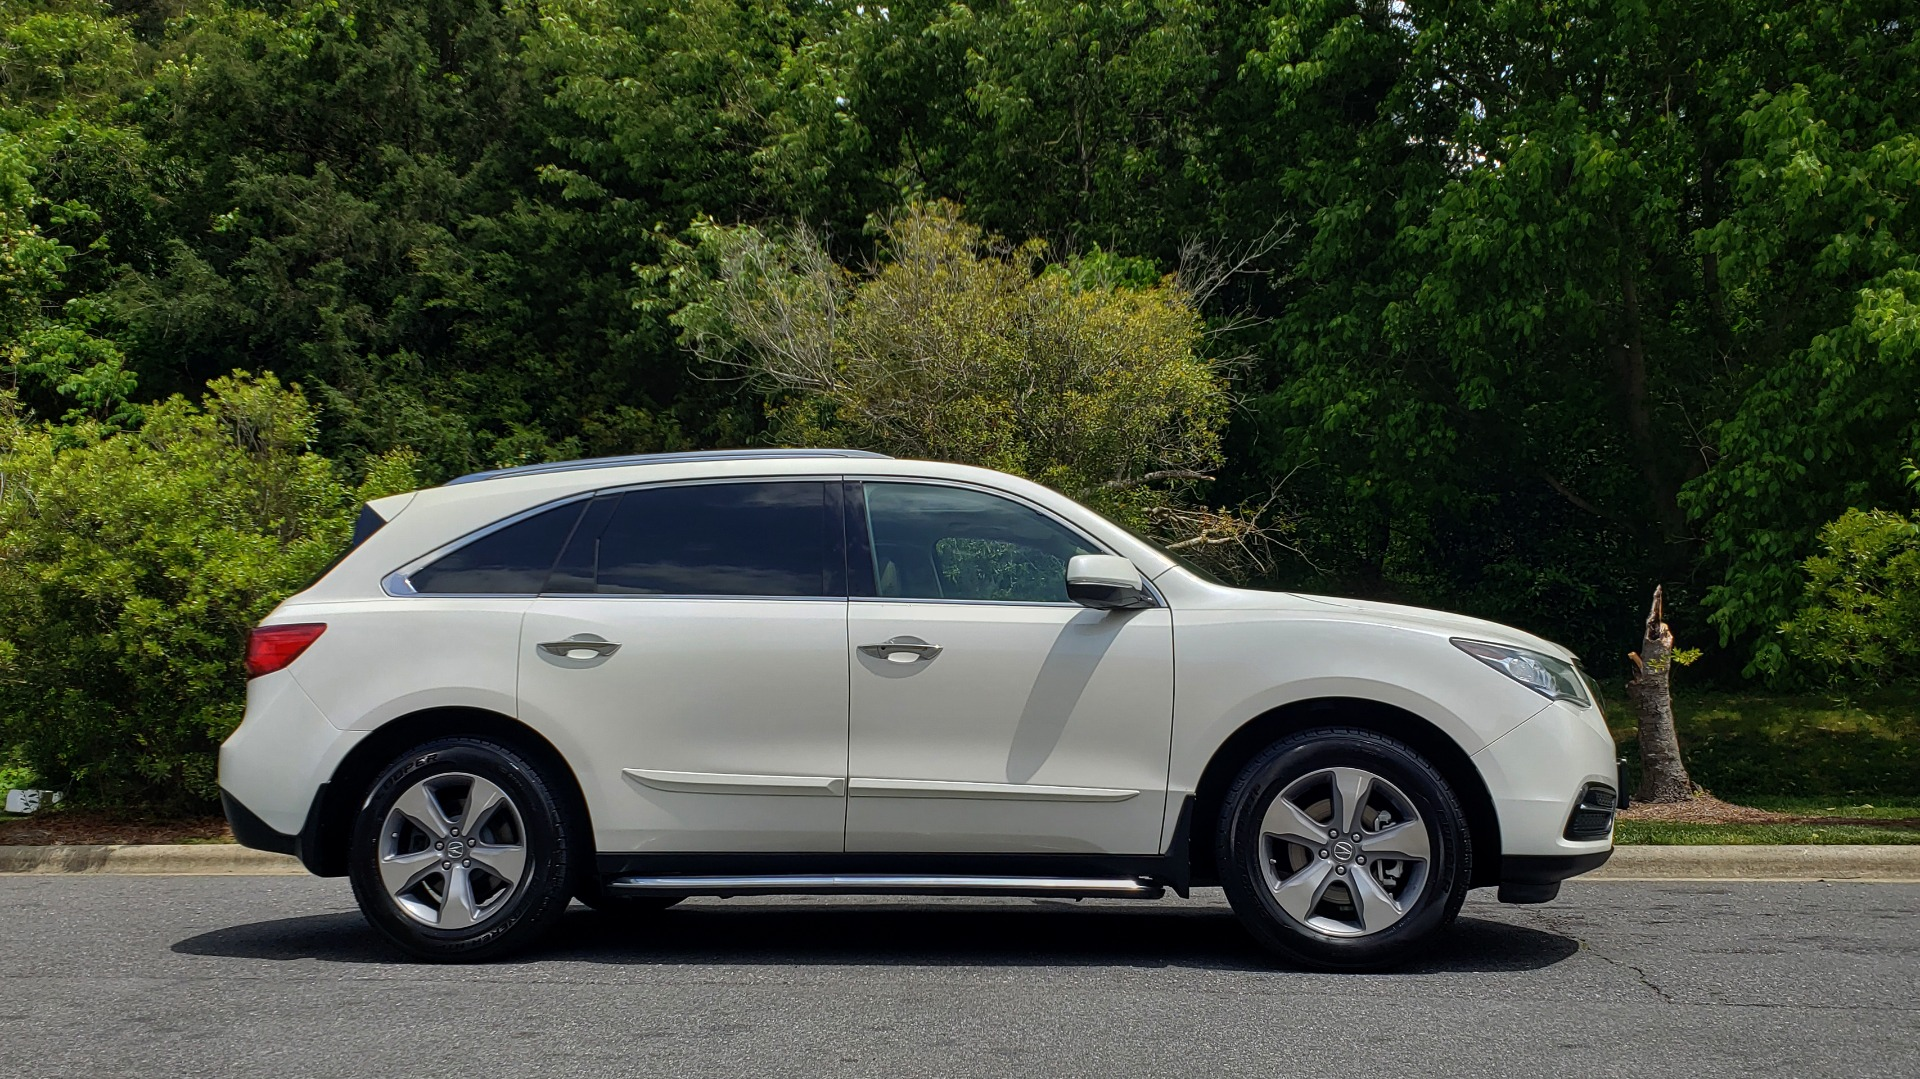 Used 2014 Acura MDX AWD / NAV / SUNROOF / 3-ROW / REARVIEW / PREMIUM SND for sale Sold at Formula Imports in Charlotte NC 28227 5